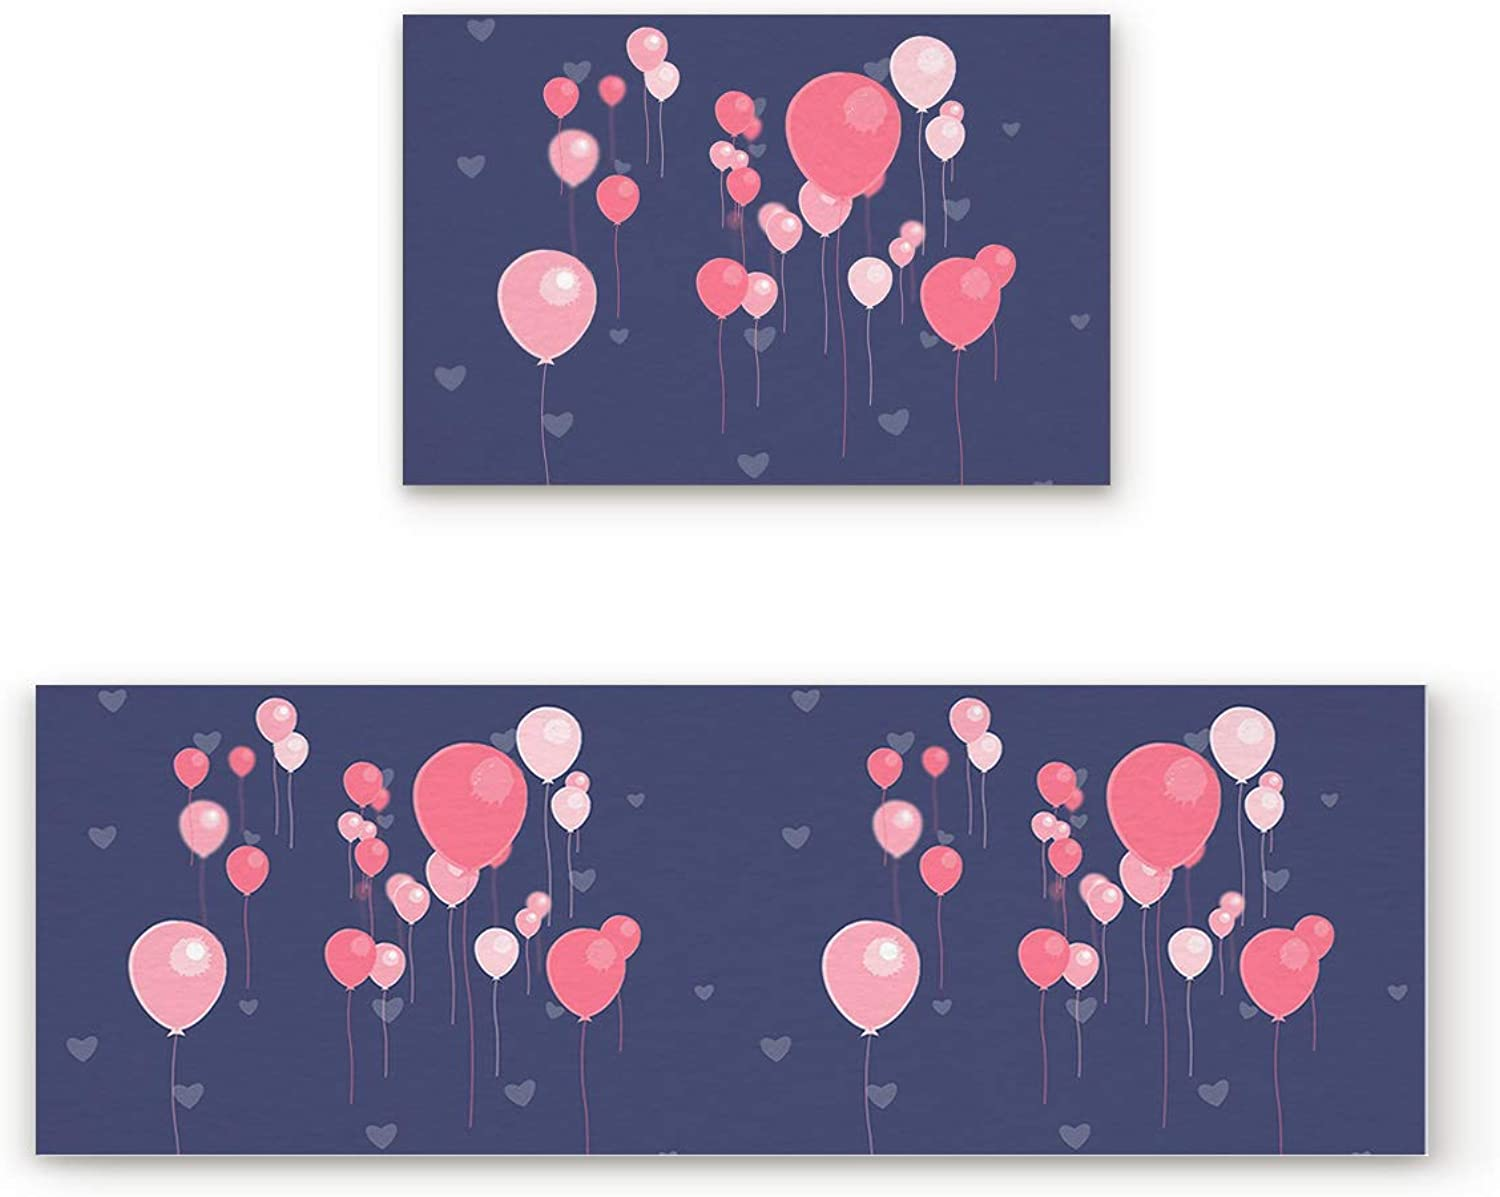 Aomike 2 Piece Non-Slip Kitchen Mat Rubber Backing Doormat Pink and Red Balloons Valentine's Day Runner Rug Set, Hallway Living Room Balcony Bathroom Carpet Sets (19.7  x 31.5 +19.7  x 63 )